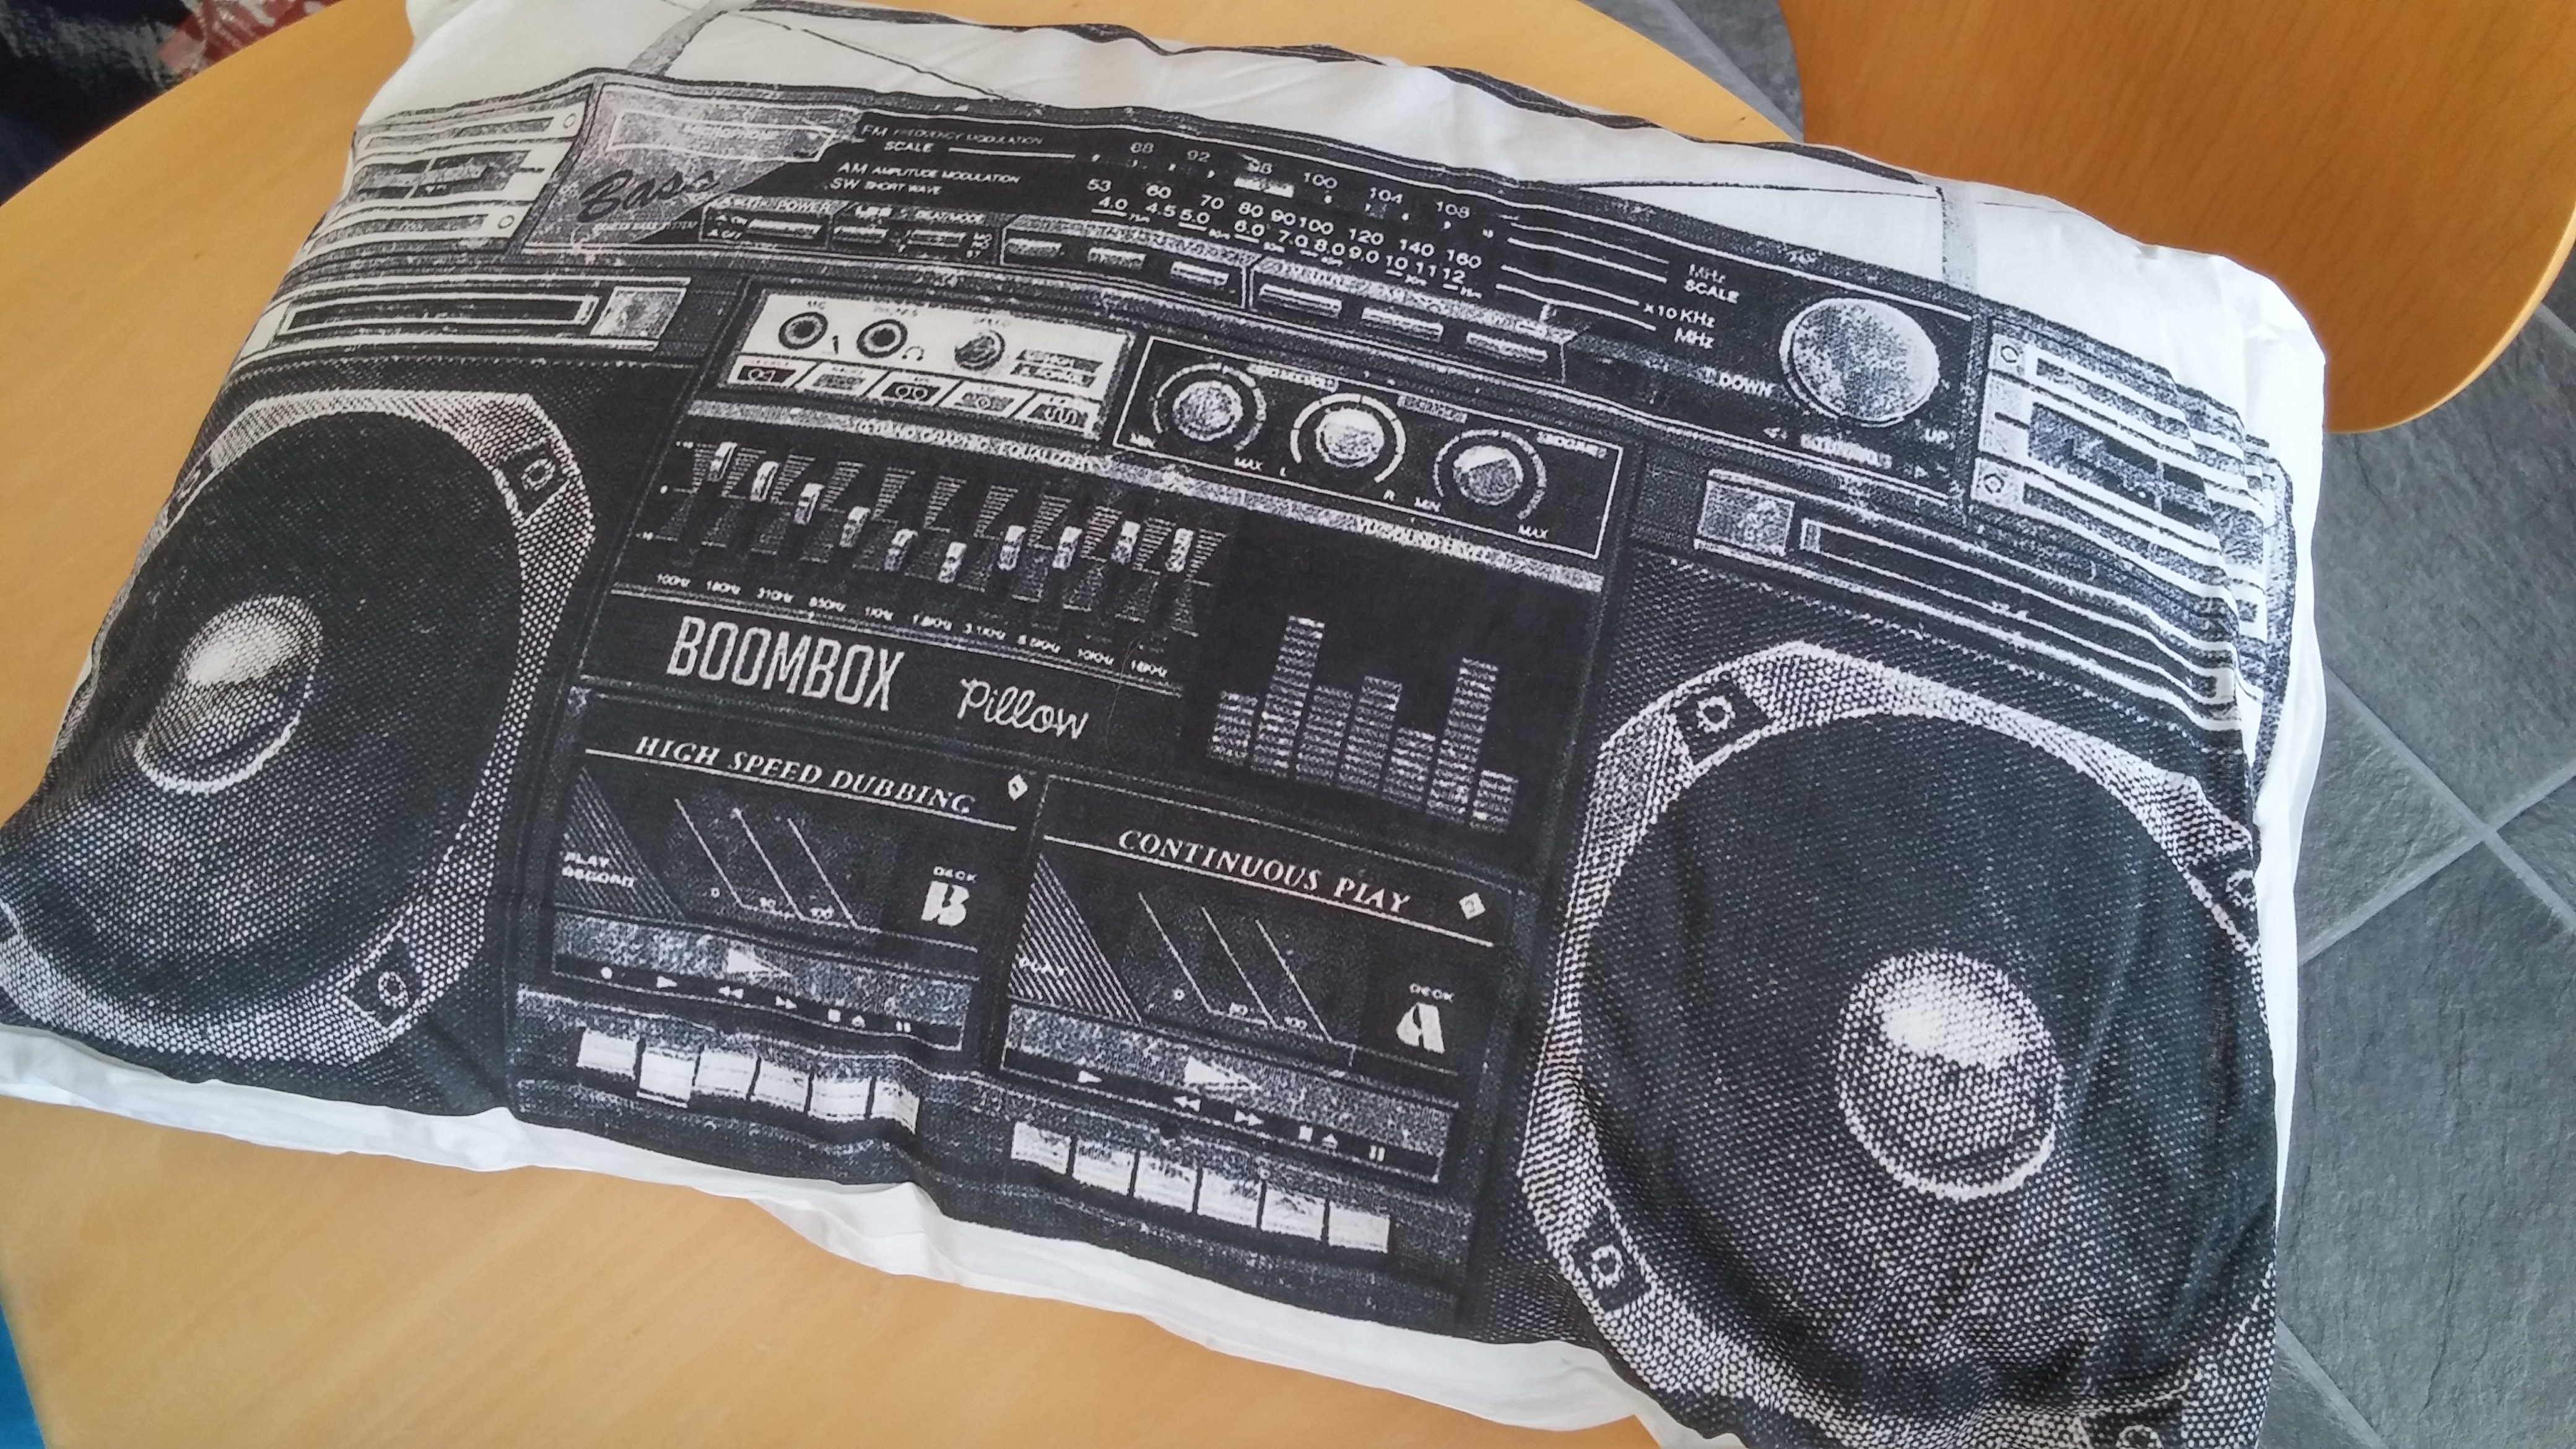 Boombox Imusic Pillow Review Coolsmartphone